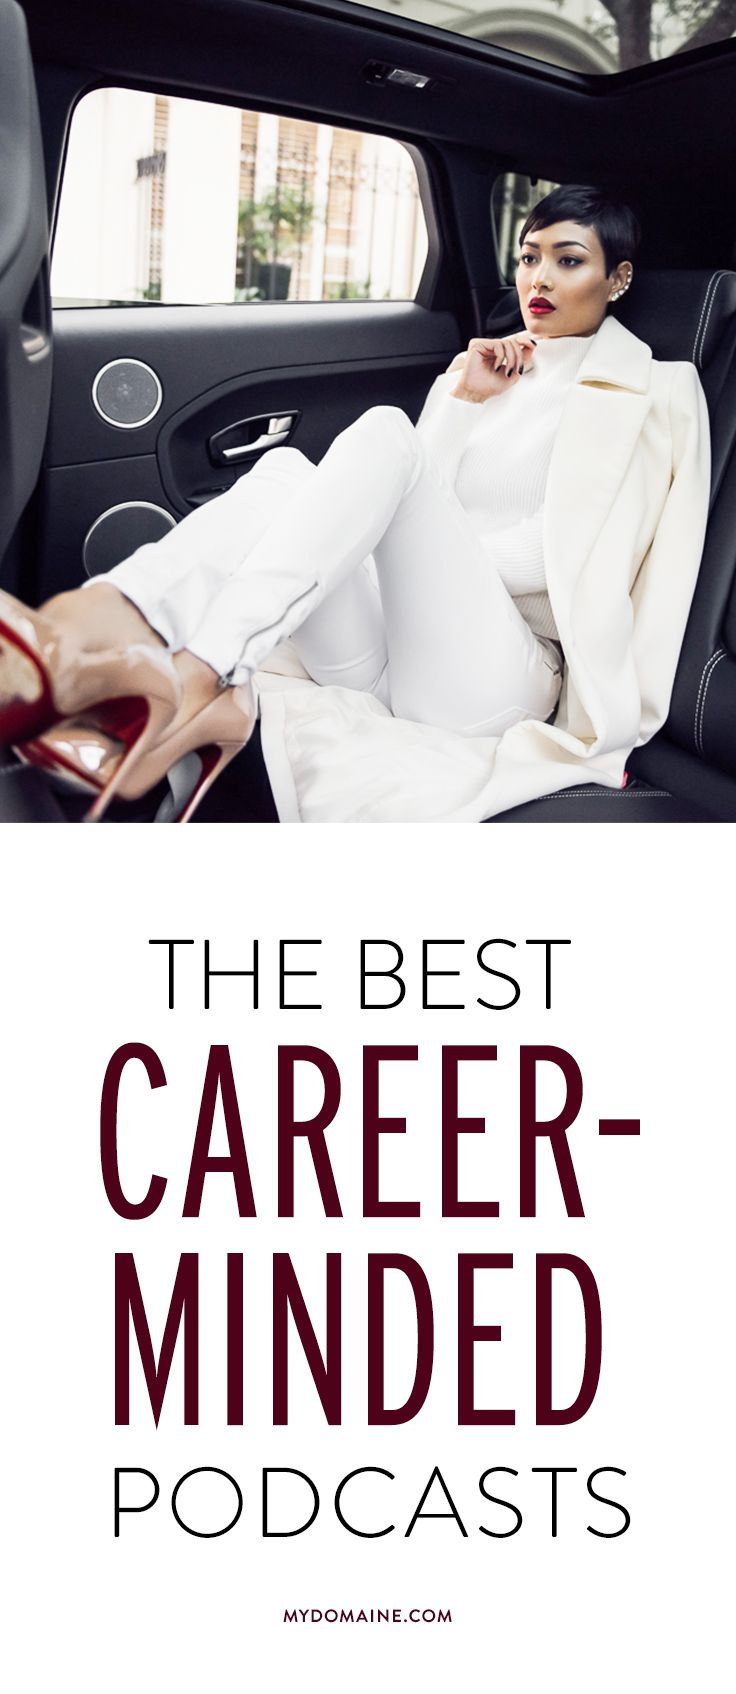 Great podcasts to help motivate you in your career...